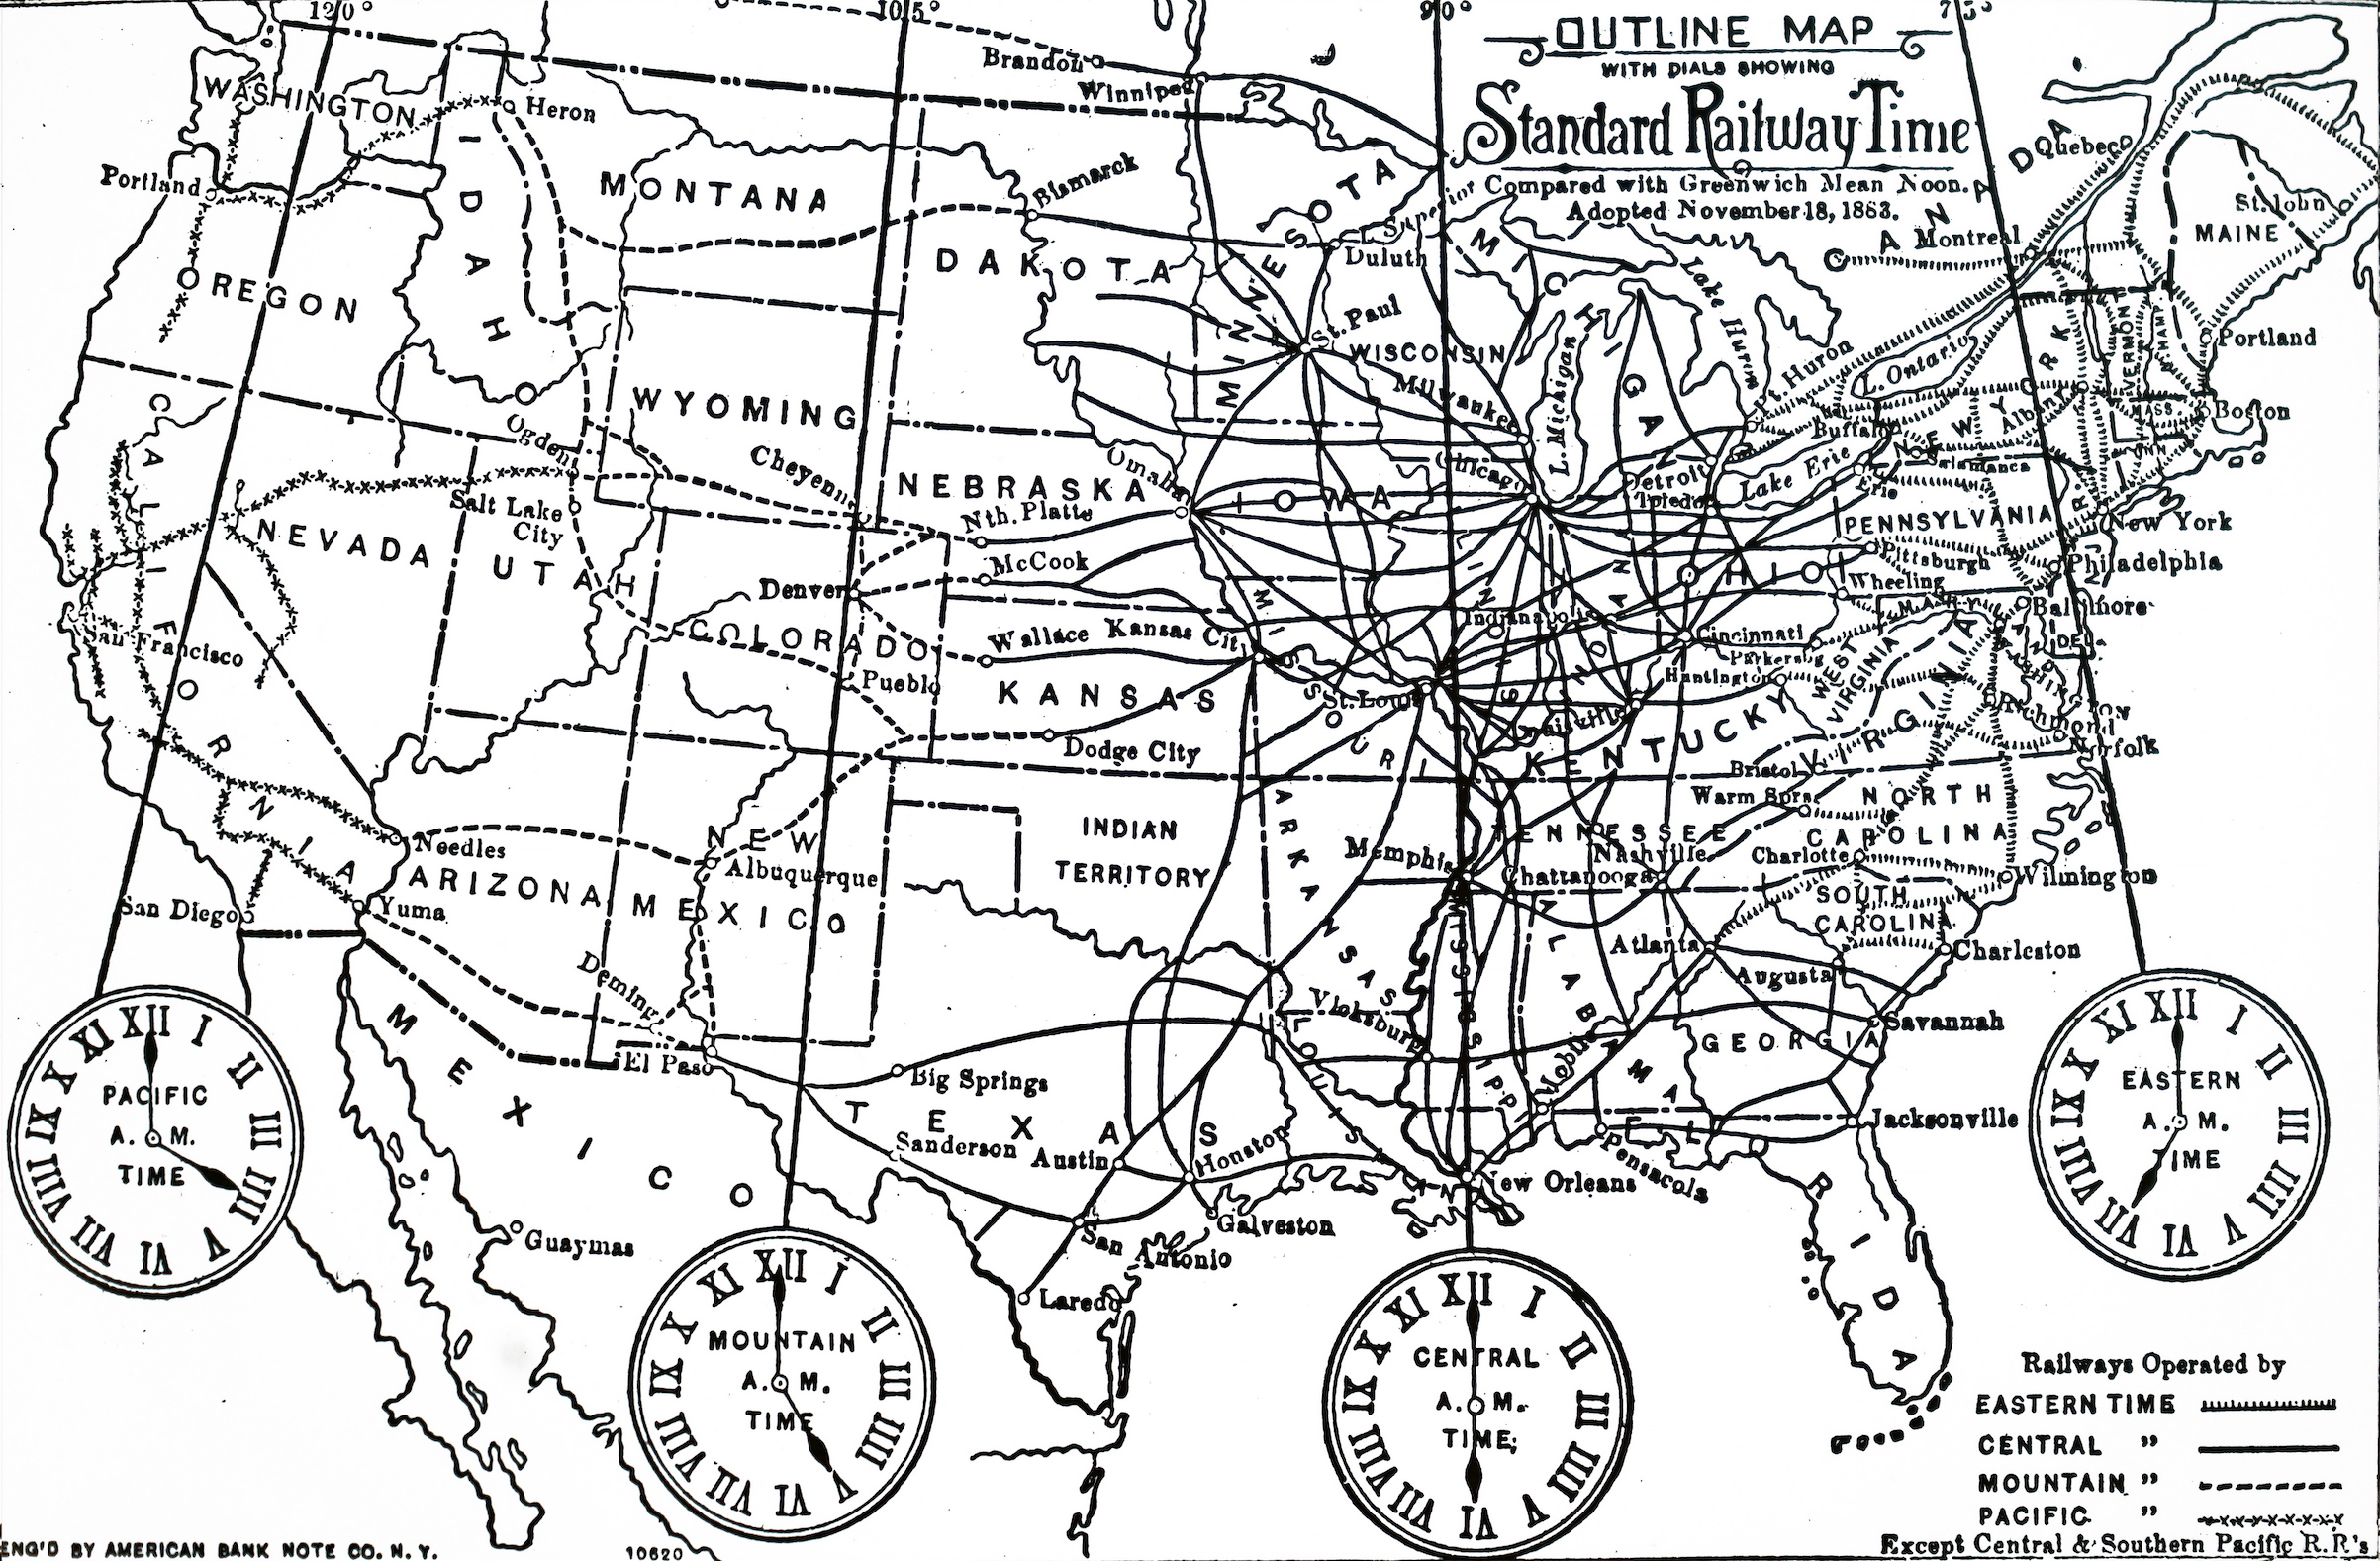 Map of time zones into which the U.S. was divided after the adoption of Standard Time on Nov. 18, 1883. Dated 19th century.